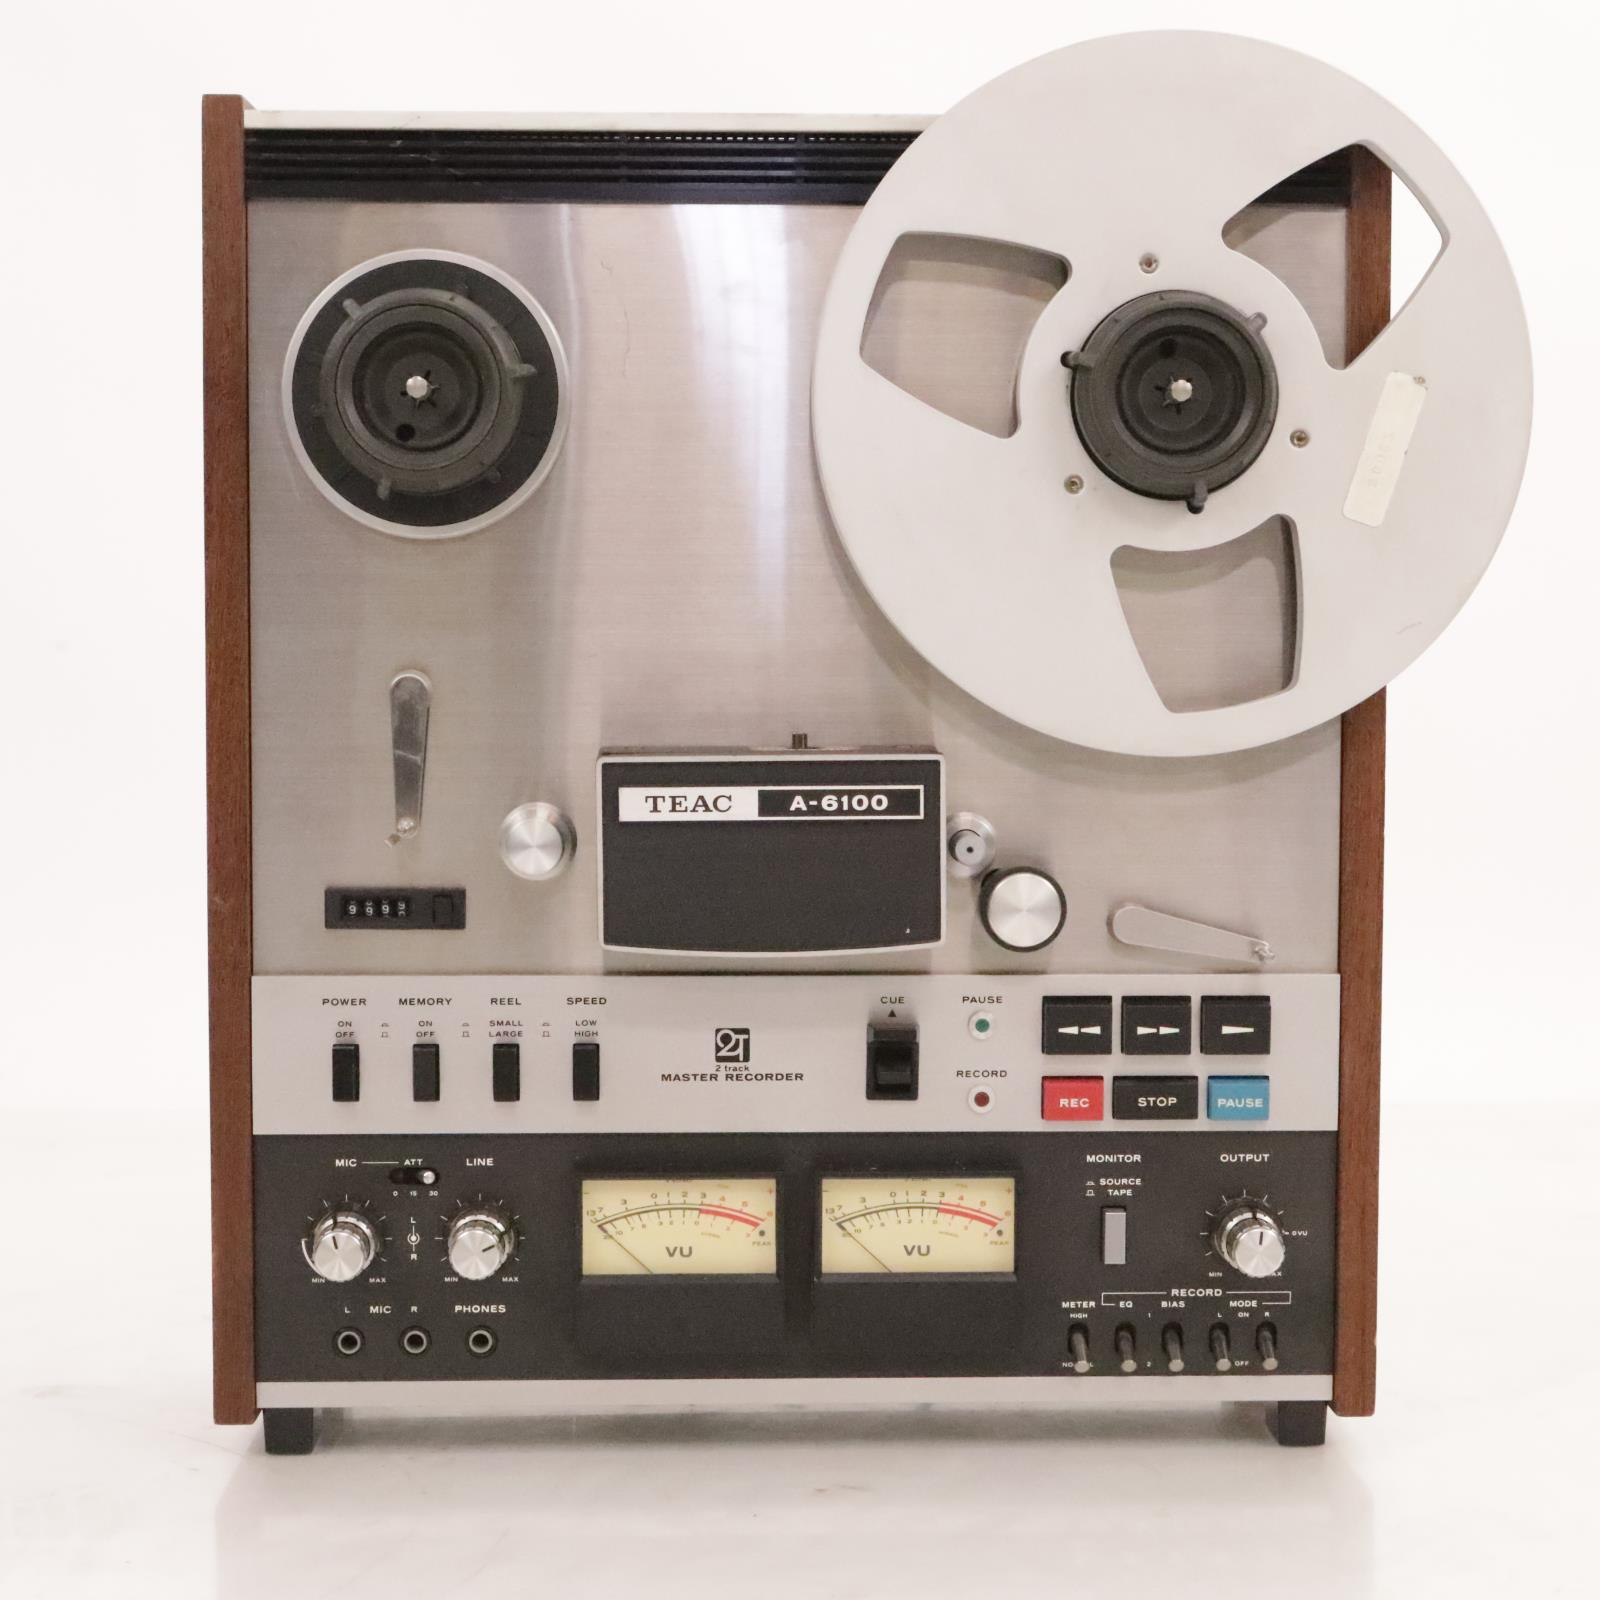 TEAC A-6100 2-Track Master Recorder Analog Tape #37232